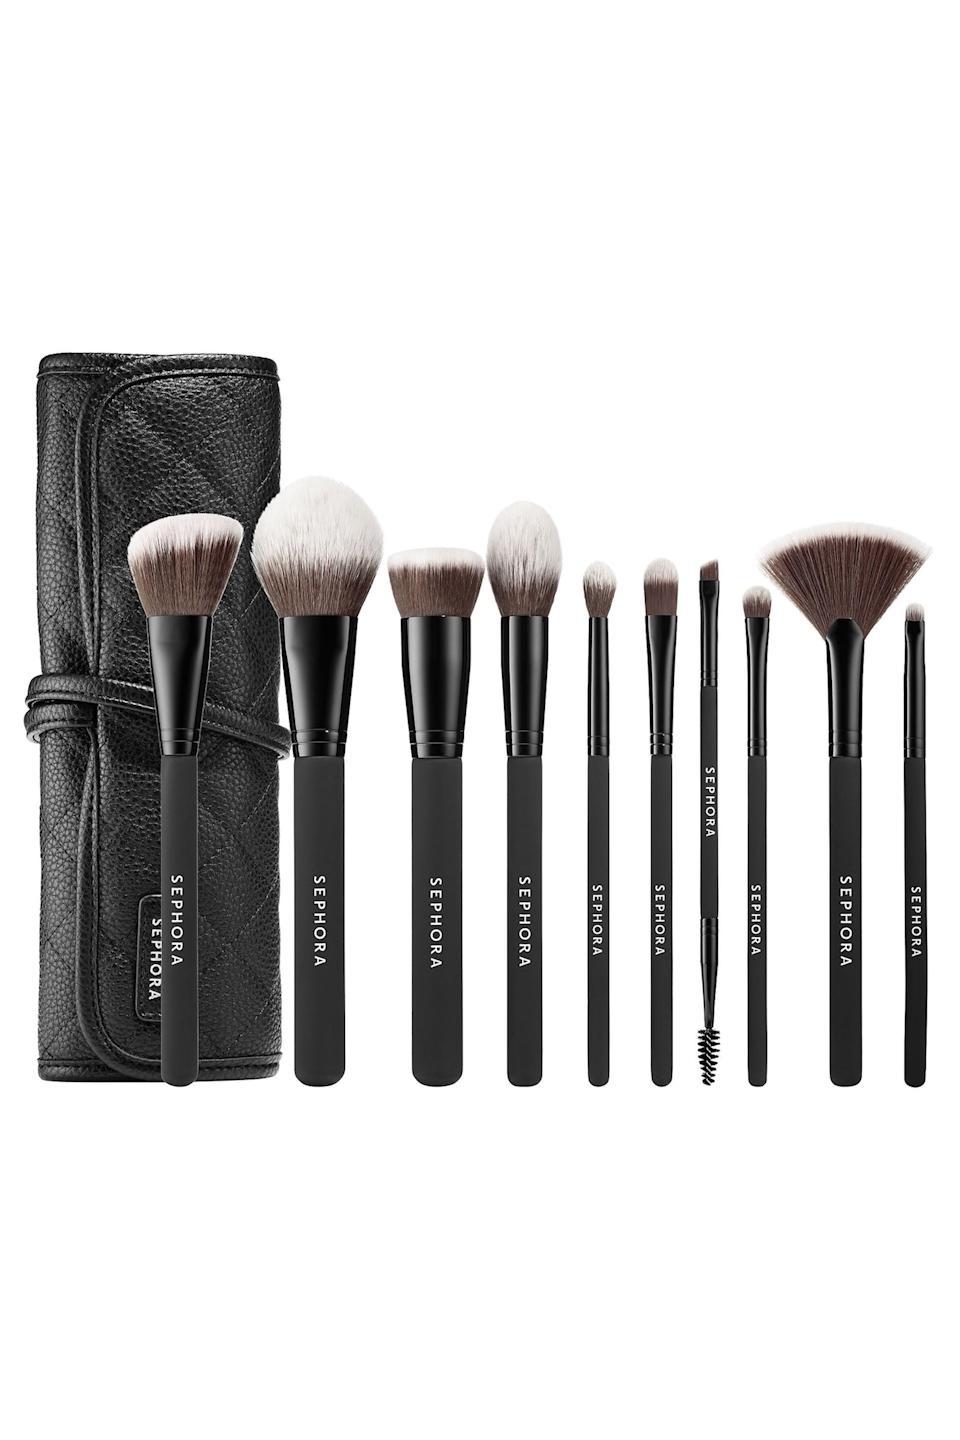 "<p><strong>Sephora Collection</strong></p><p>sephora.com</p><p><strong>$72.00</strong></p><p><a href=""https://go.redirectingat.com?id=74968X1596630&url=https%3A%2F%2Fwww.sephora.com%2Fproduct%2Fready-to-roll-brush-set-P420011&sref=https%3A%2F%2Fwww.elle.com%2Ffashion%2Fshopping%2Fg34208929%2Fgift-ideas-for-college-students%2F"" rel=""nofollow noopener"" target=""_blank"" data-ylk=""slk:Shop Now"" class=""link rapid-noclick-resp"">Shop Now</a></p><p>Invest in the budding beauty blogger with a quality makeup brush set that includes every tool they need for a full face beat. </p>"